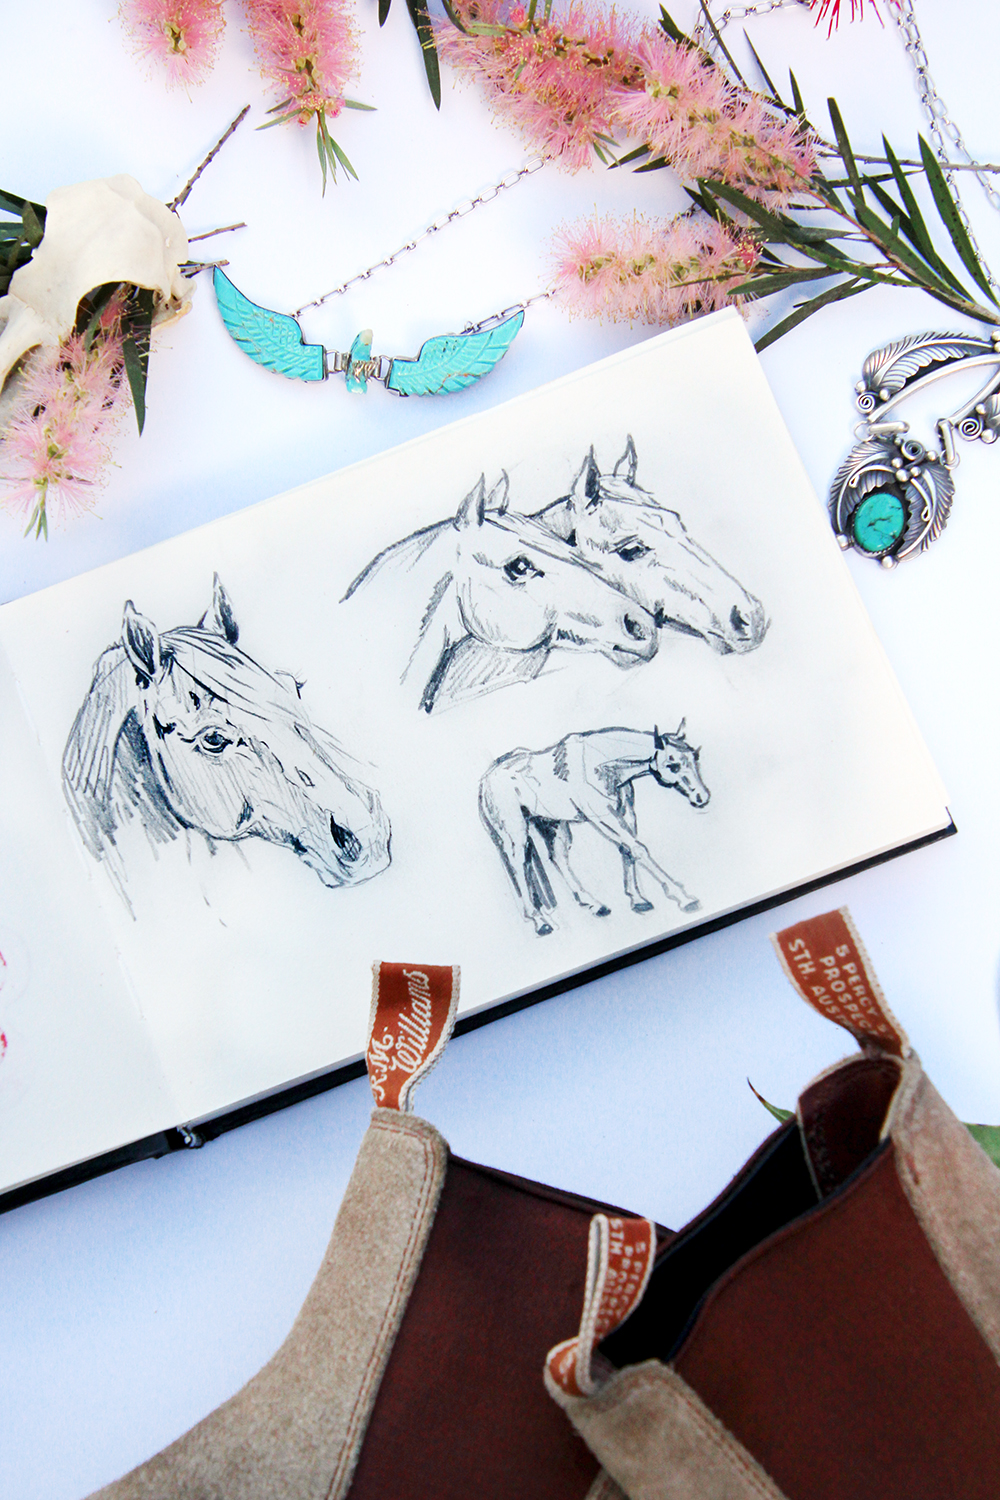 ponygold-sketchbook-jan-7-web.jpg